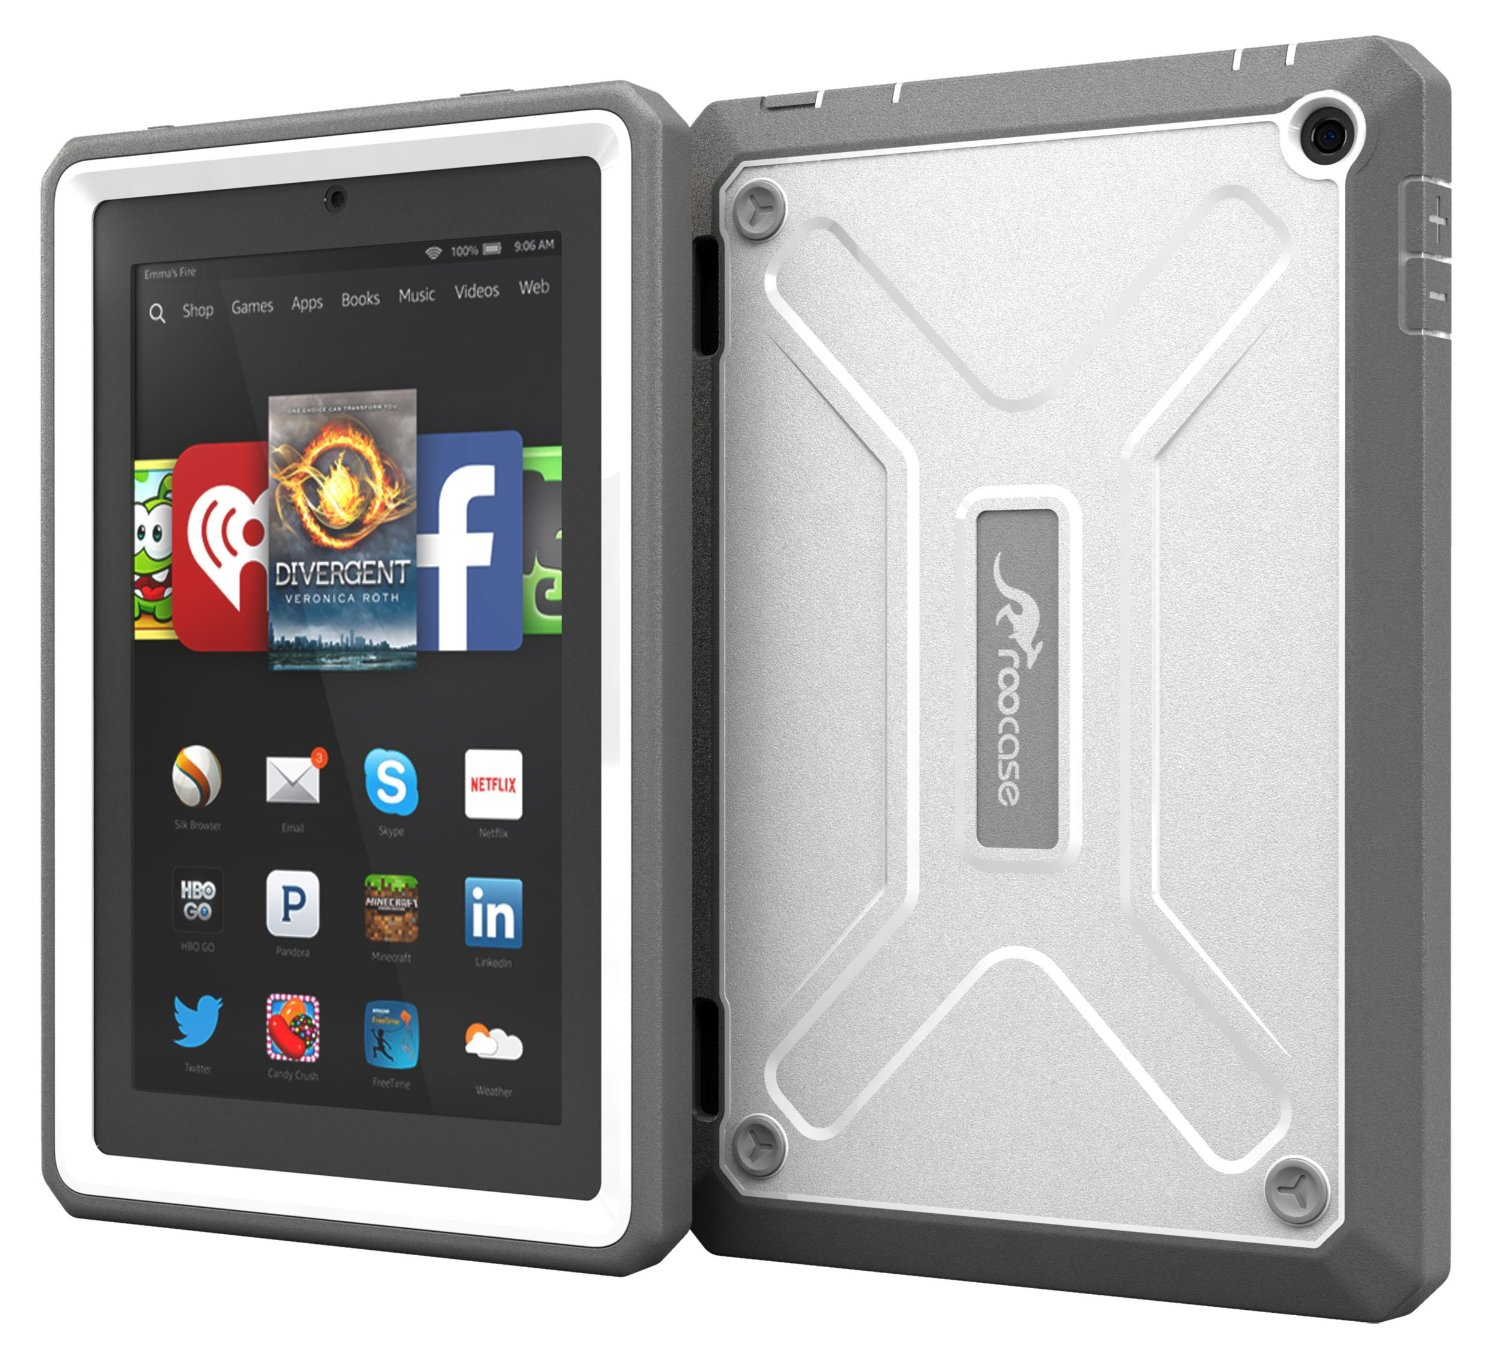 Top 8 best amazon fire hd 7 2014 cases and covers for Amazon casa